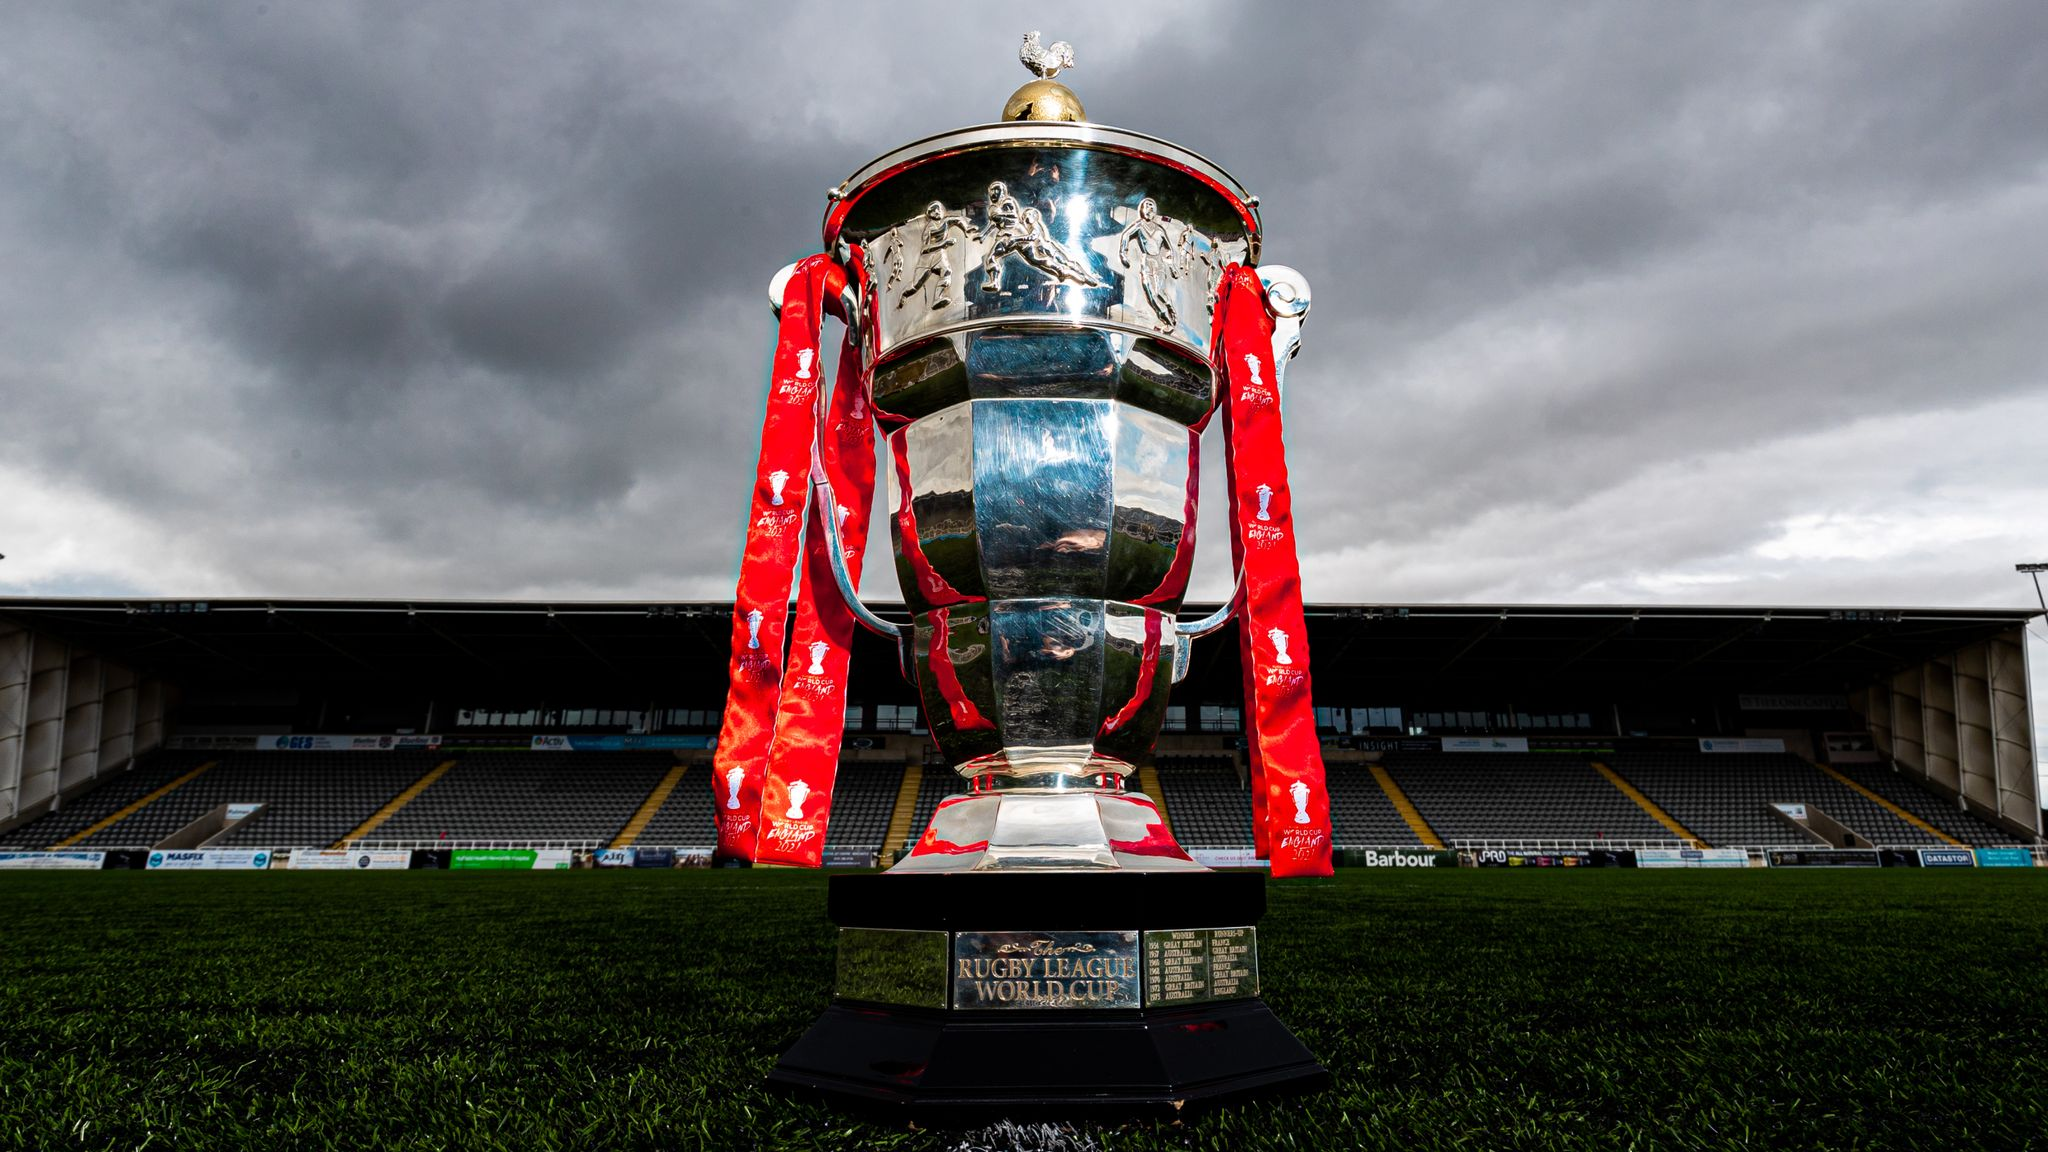 Rugby League World Cup 2021 draw LIVE!